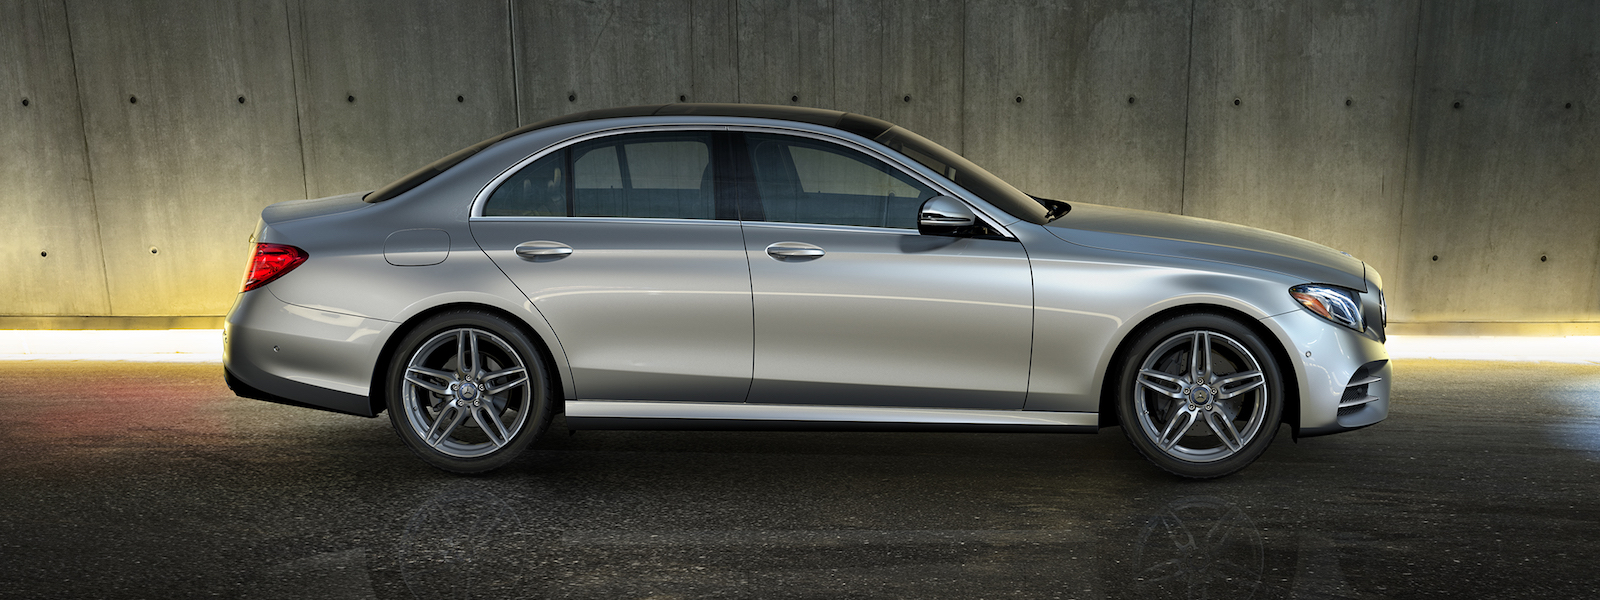 2017 Mercedes E-Class Performance